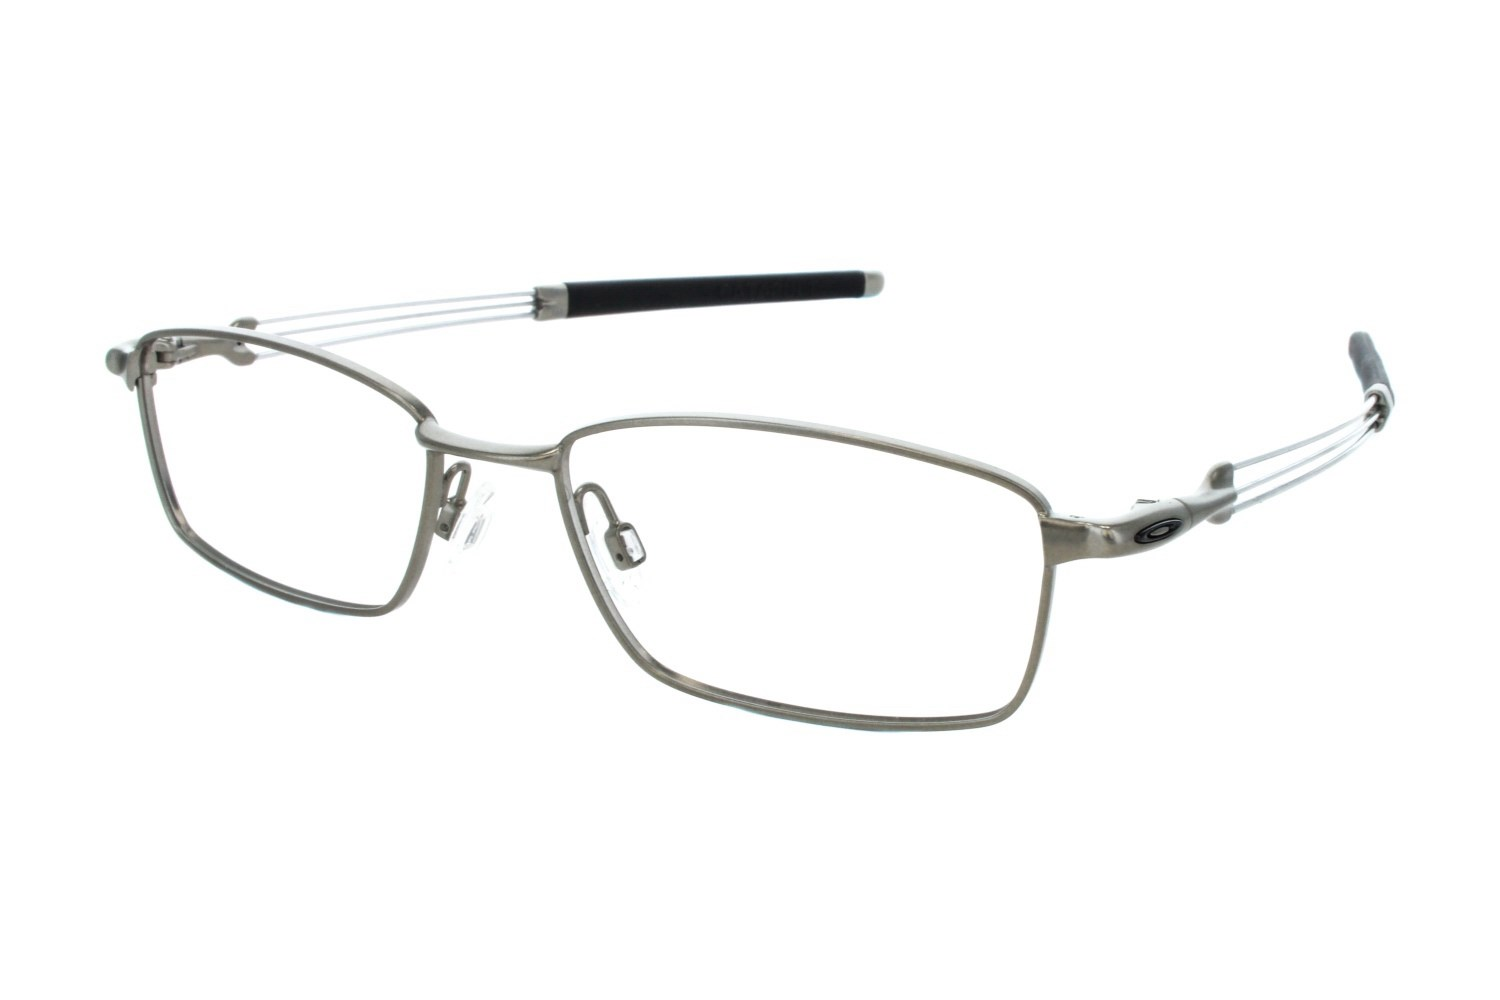 Oakley Catapult 52 Prescription Eyeglasses Frames